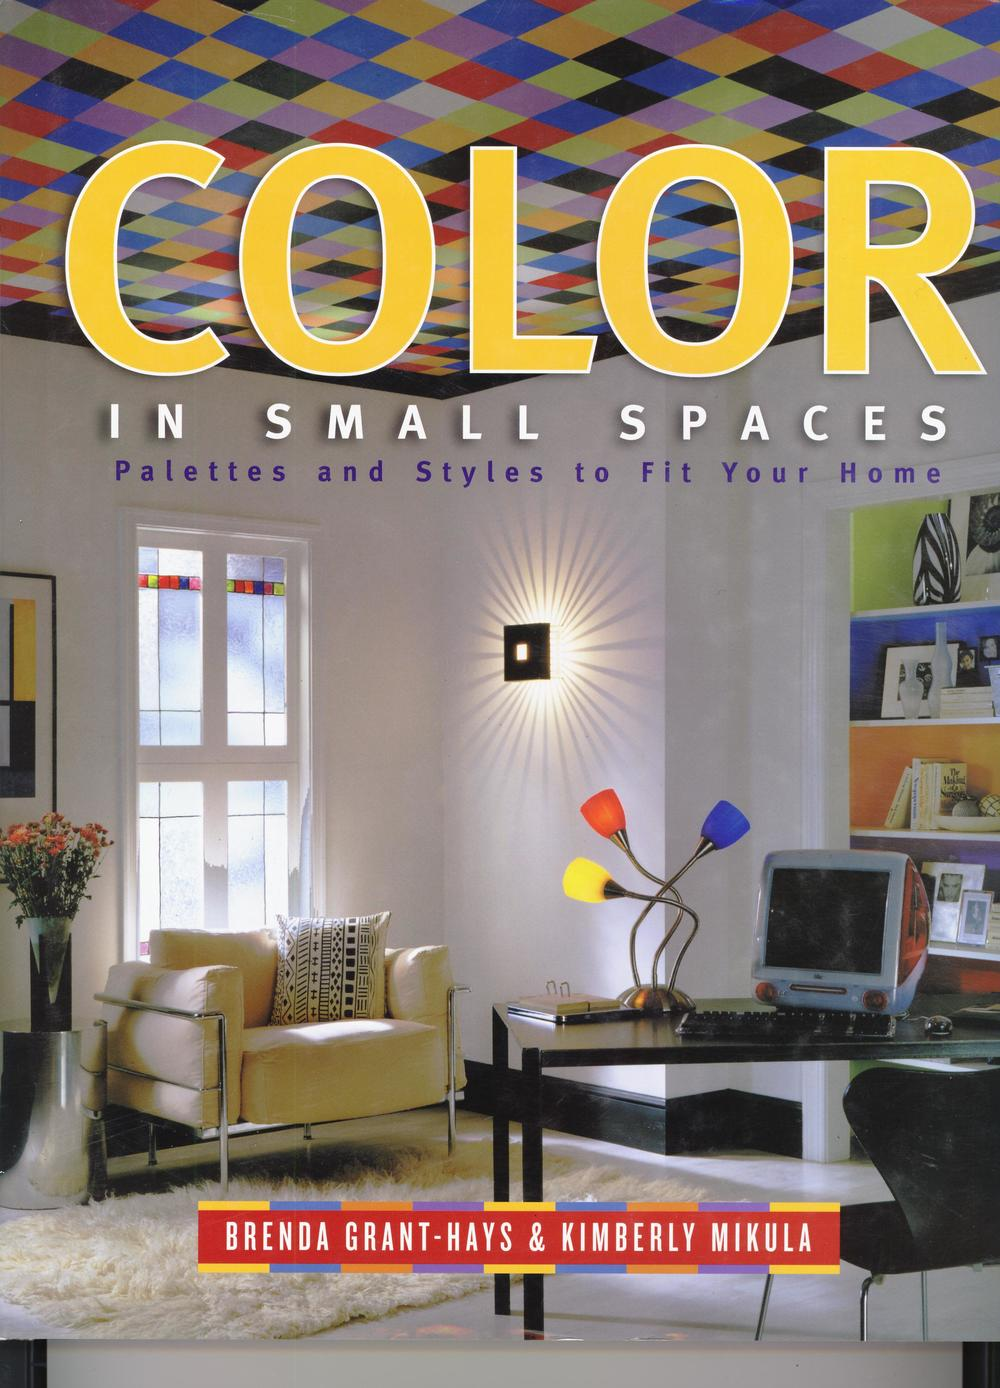 colorinsmspaces.book0001.JPG